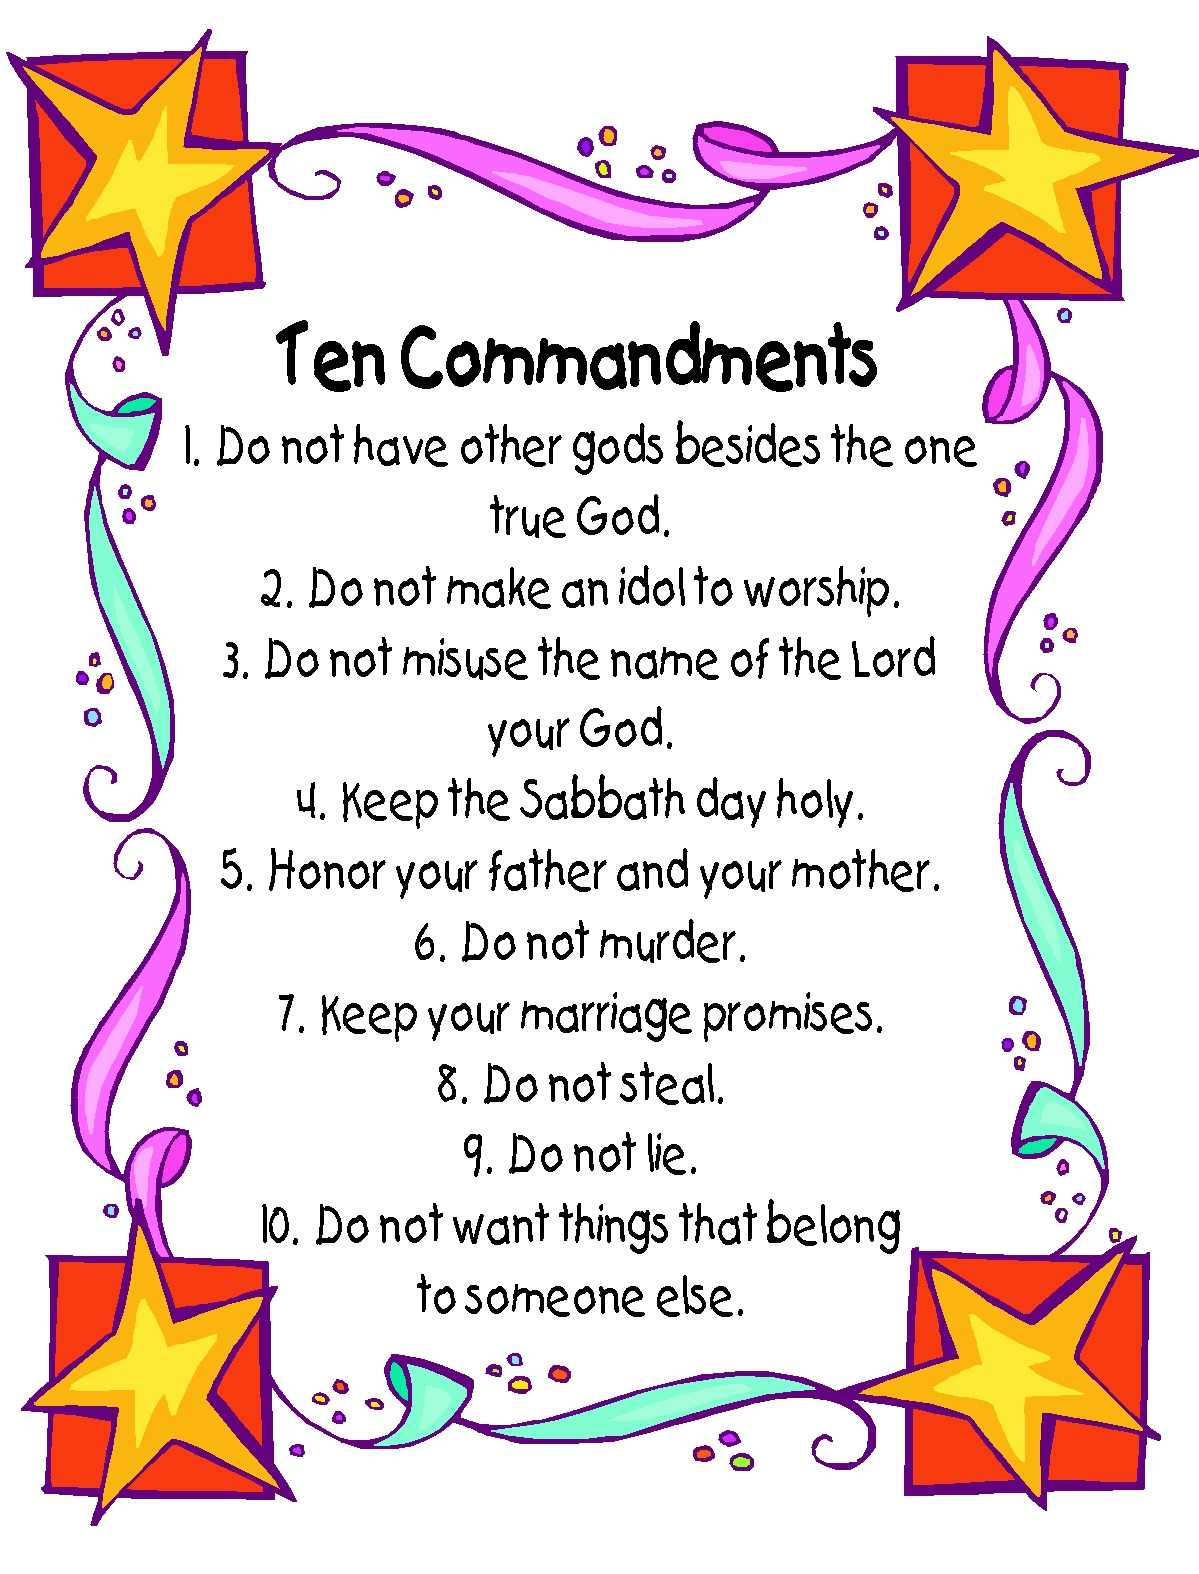 image relating to Ten Commandments Printable known as 10 Commandments Poster cost-free printable child pleasant